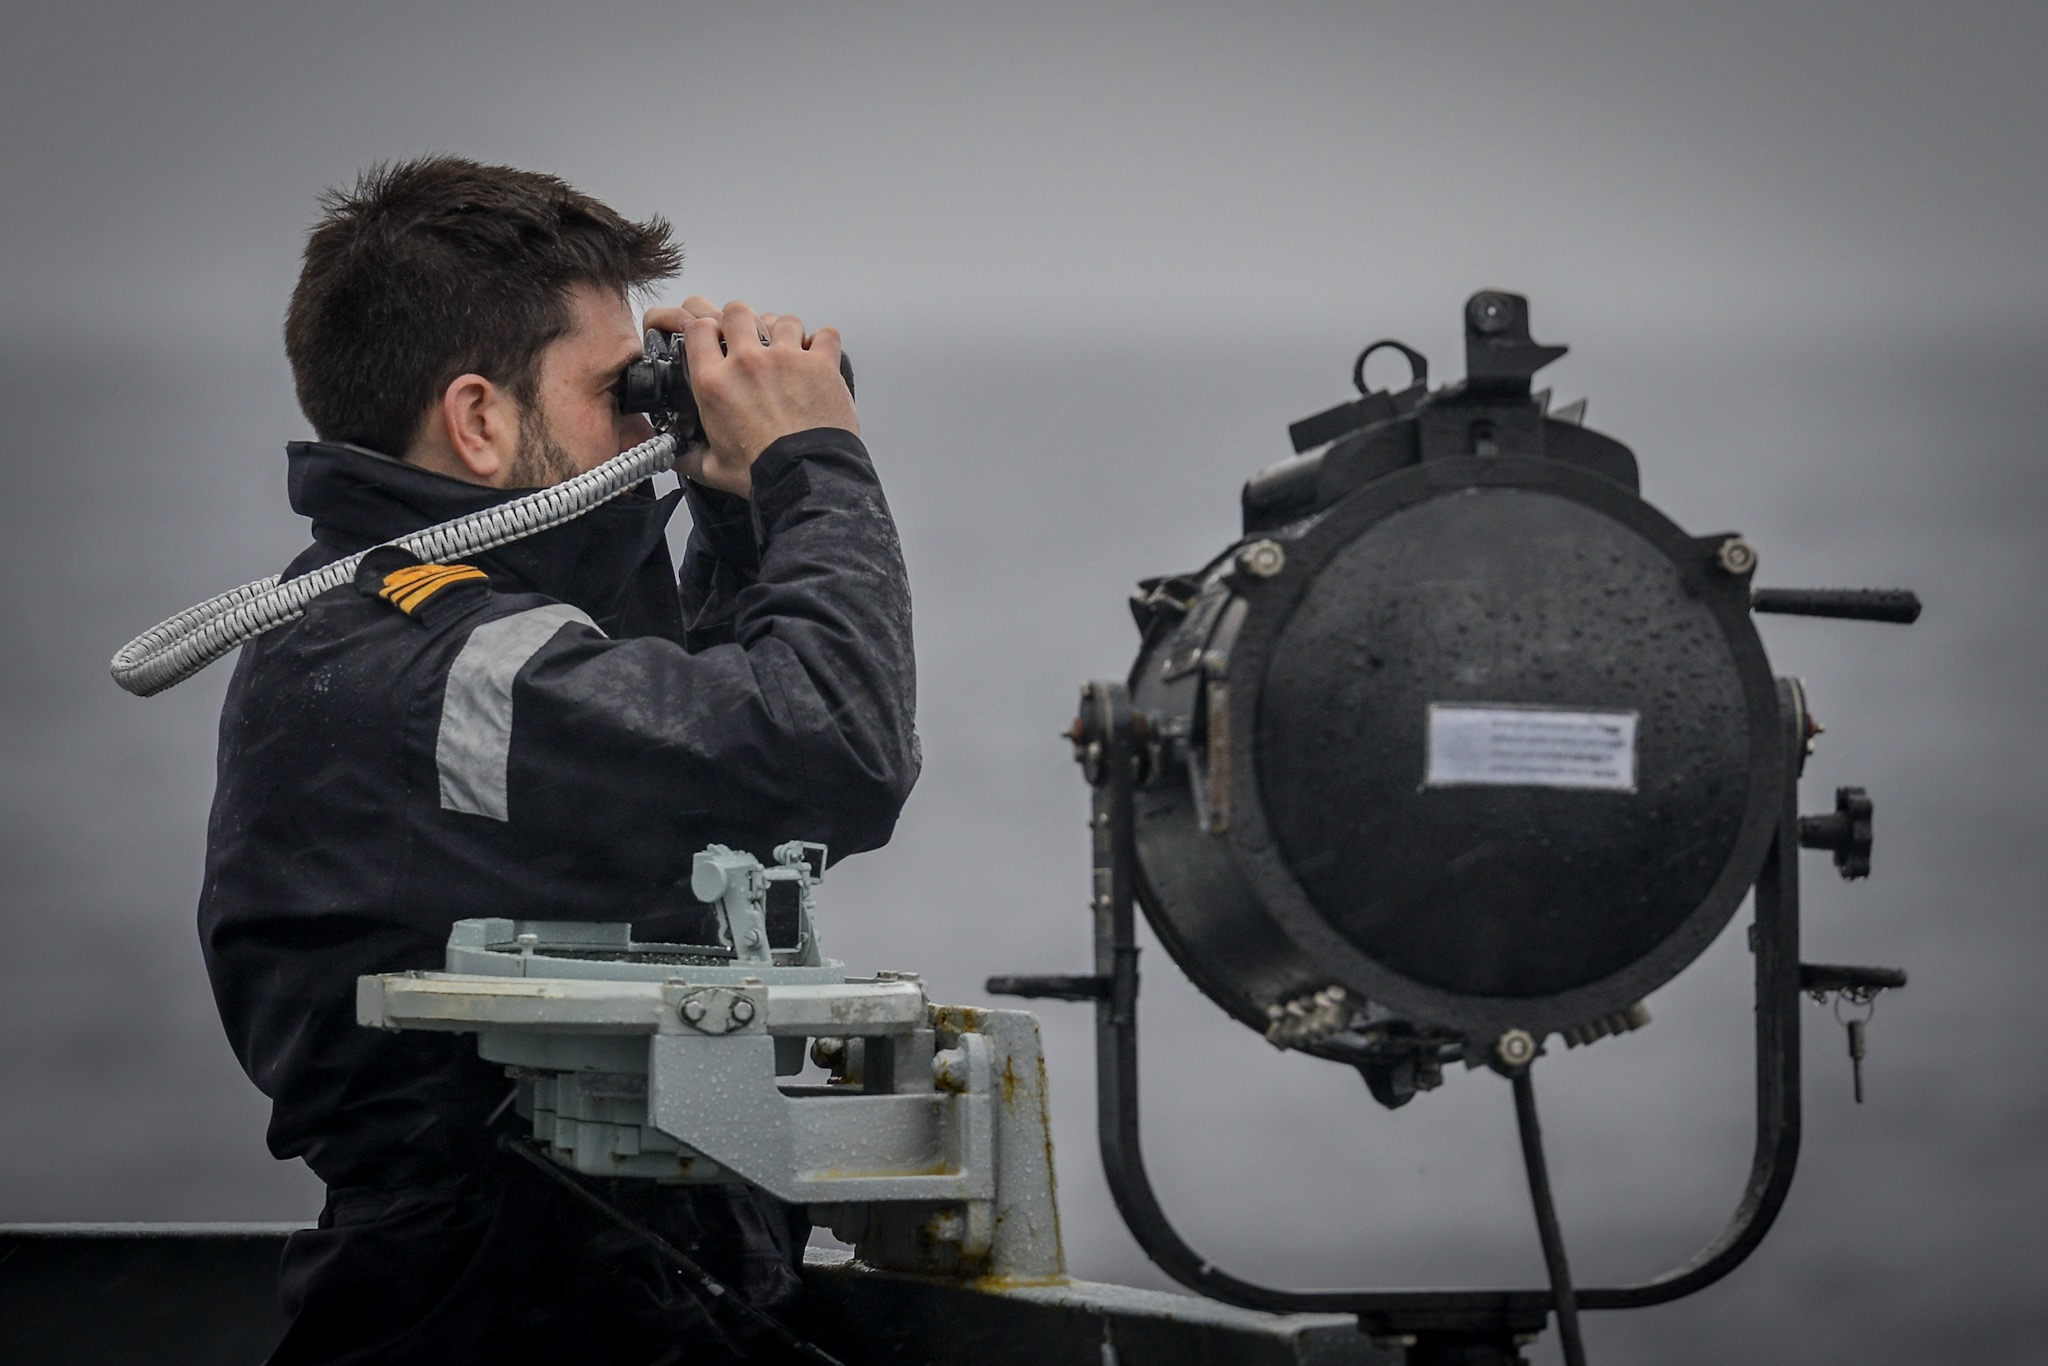 HMS Astute and HMS St Albans have been training in the Atlantic